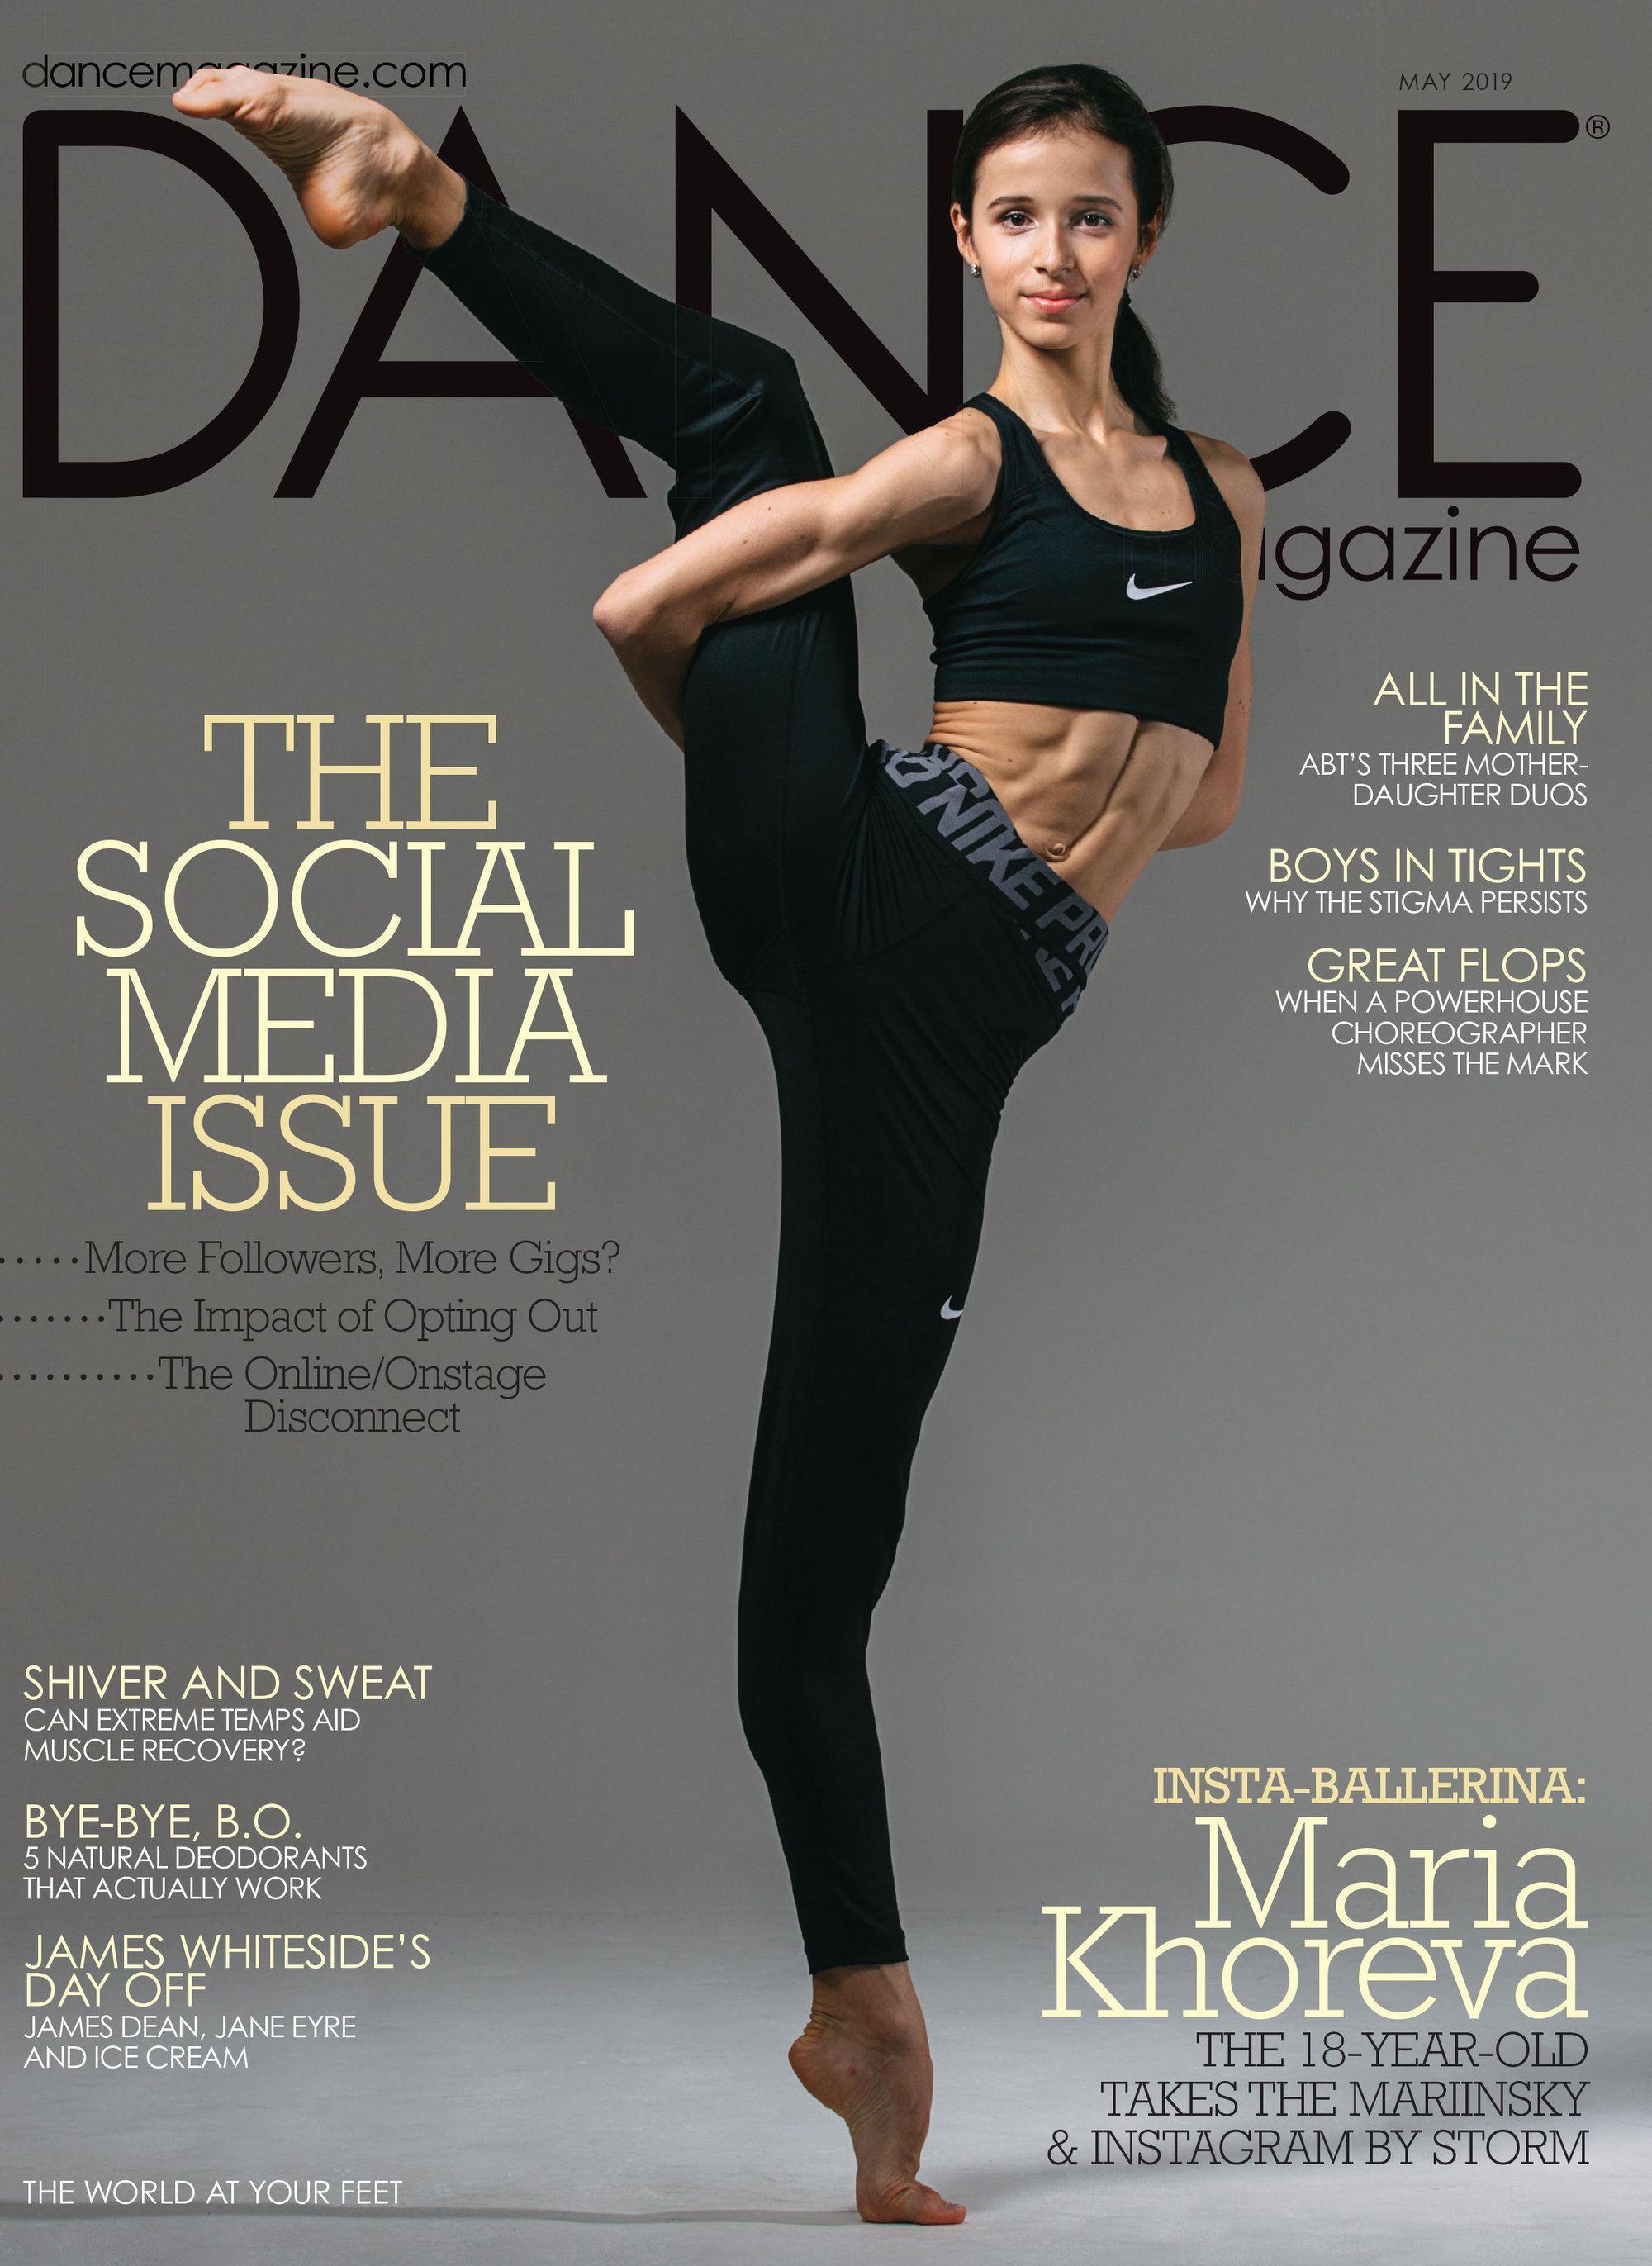 a1f0ba98a 11 Dancer Expenses You Should Deduct From Your Taxes - Dance Magazine